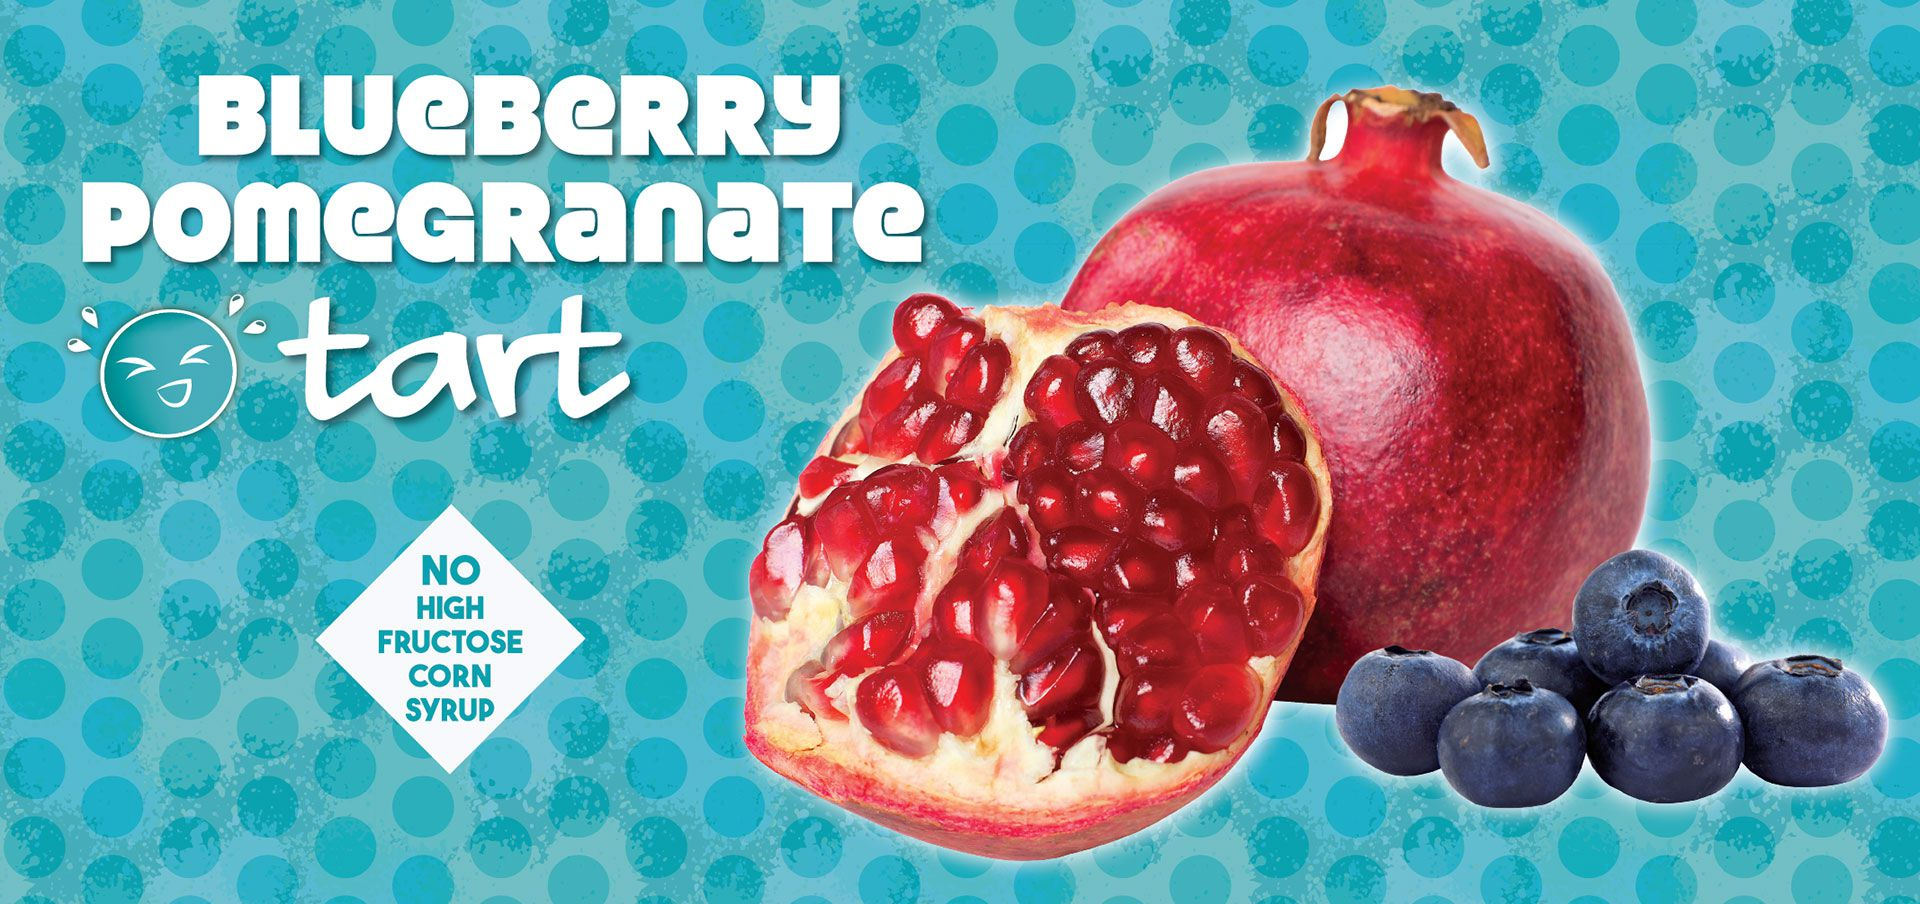 blueberry pomegranate tart label image